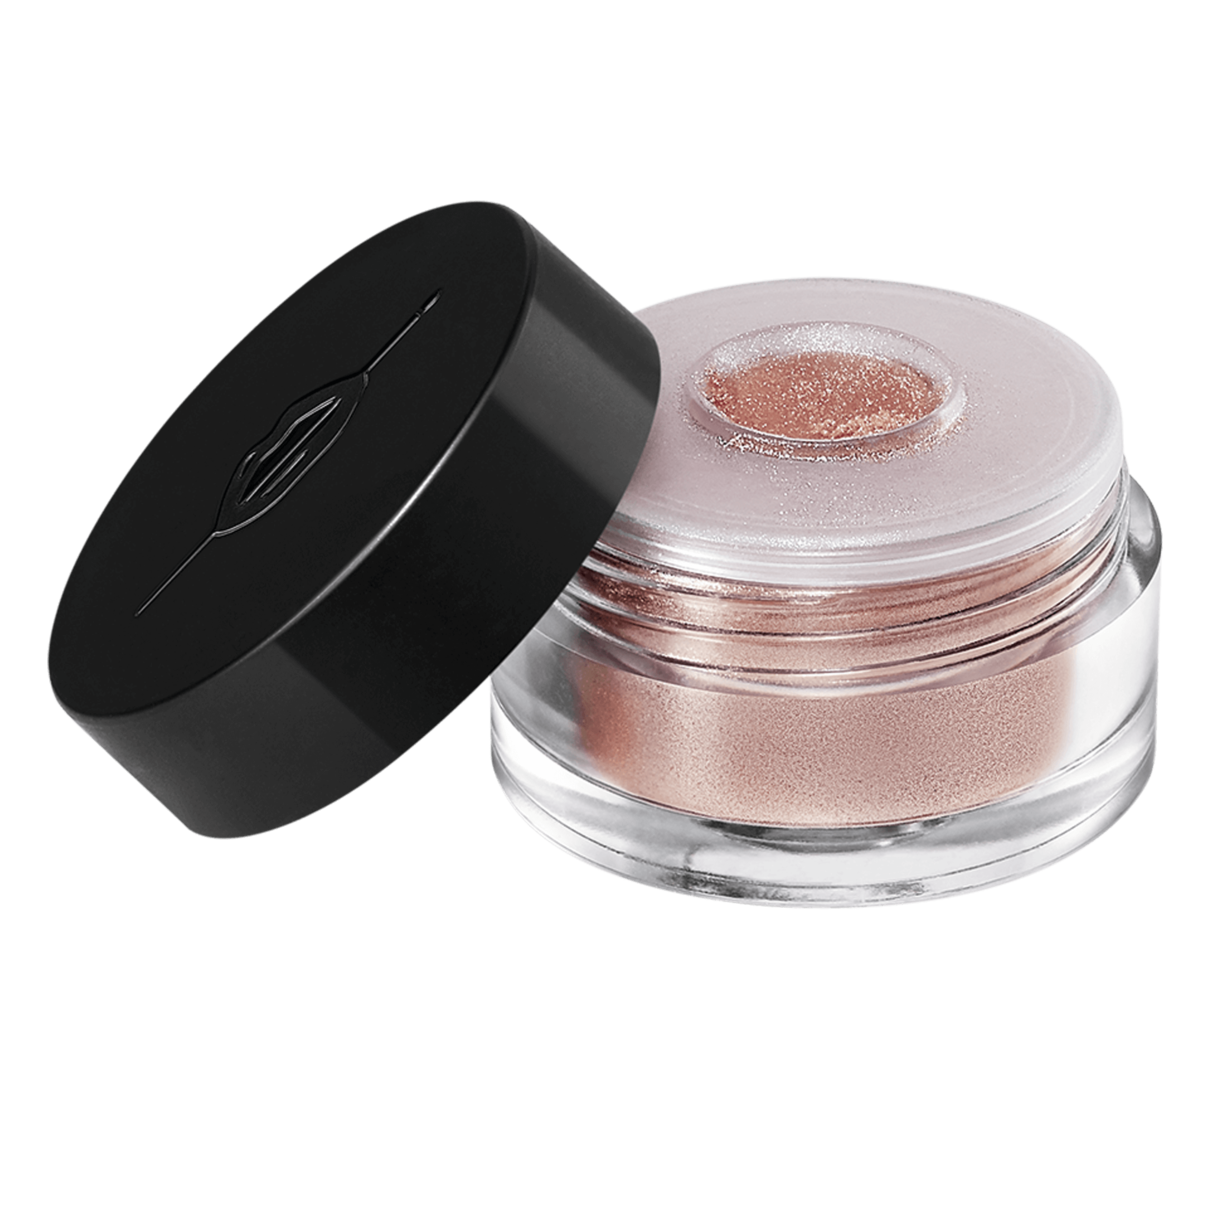 make up forever star lit powder 15 for holiday look